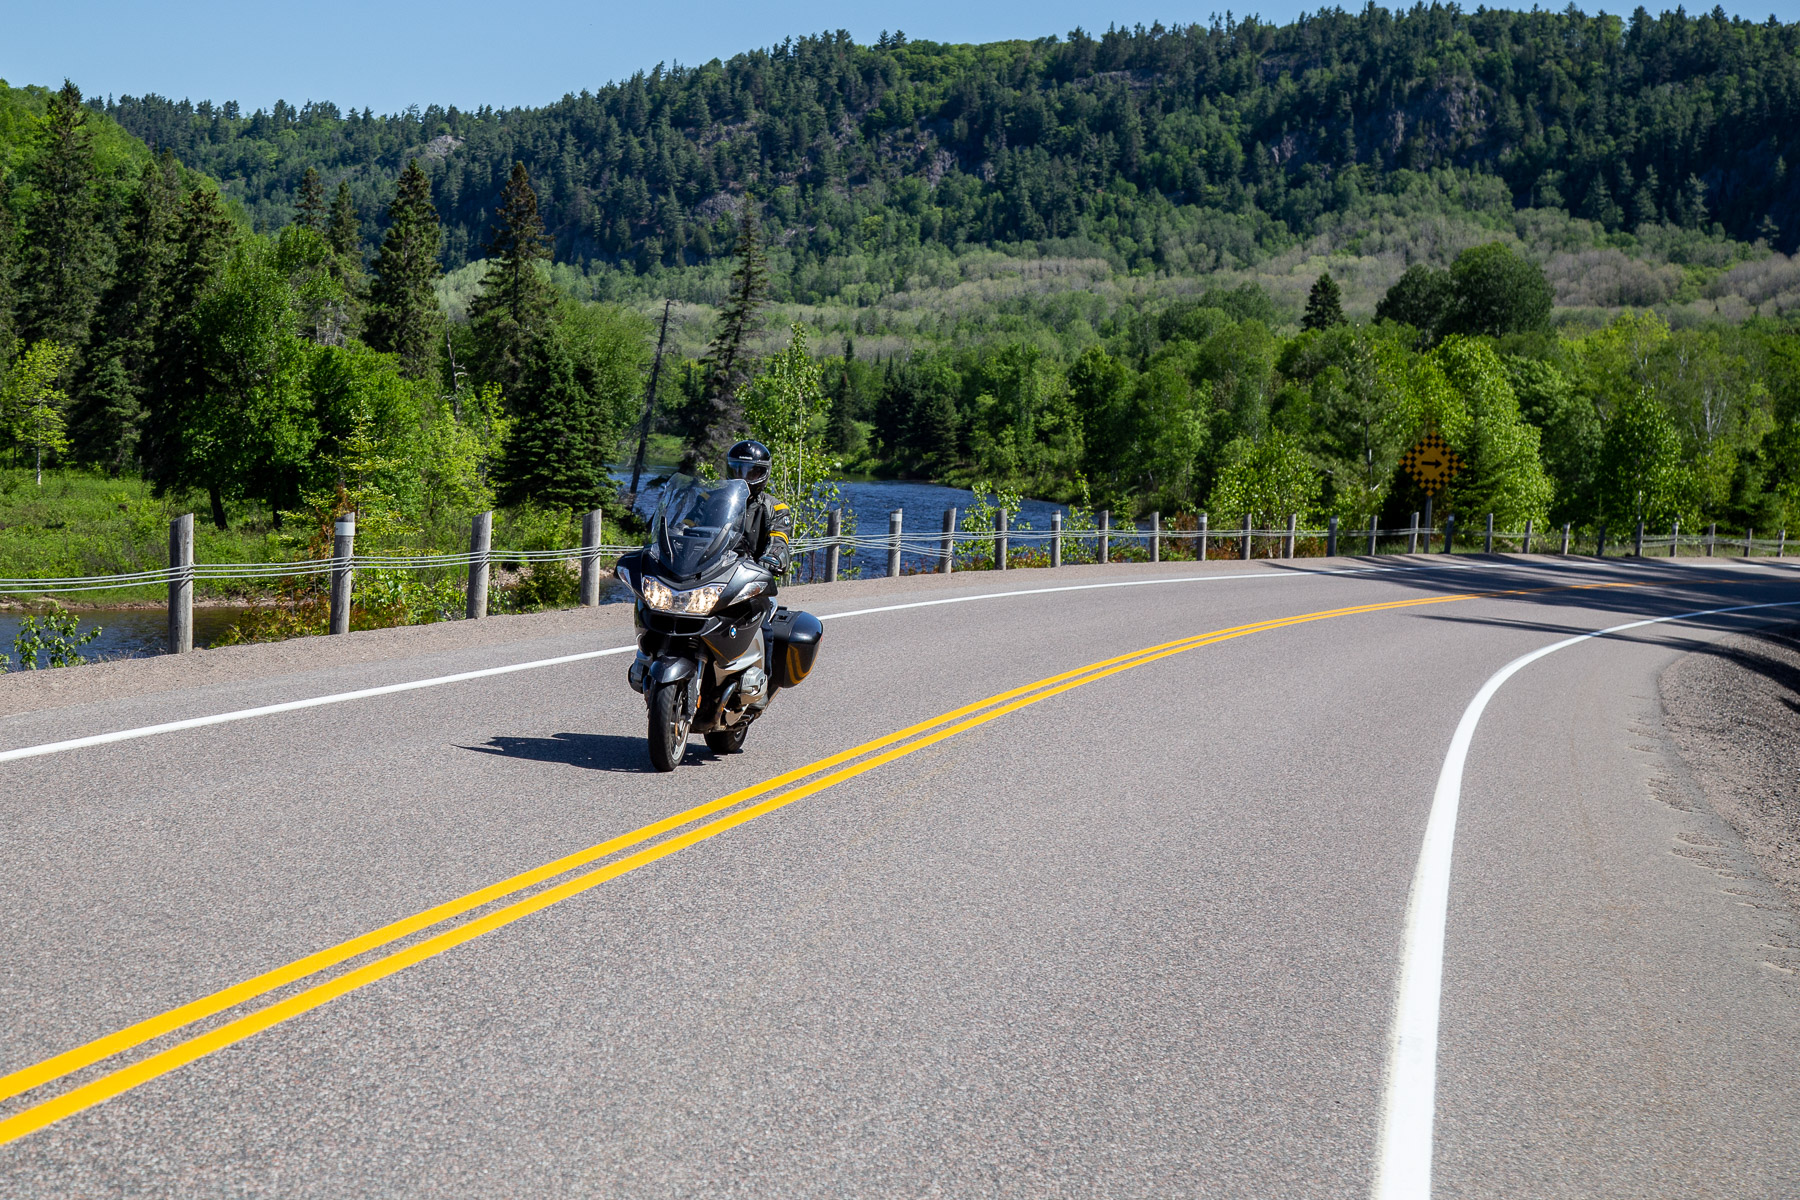 Upsizing the Grand Algoma—The GTA to Wawa - If you're going to take time off for a motorcycle trip you better make sure it's worth it! Here's how to do the Grand Algoma right...